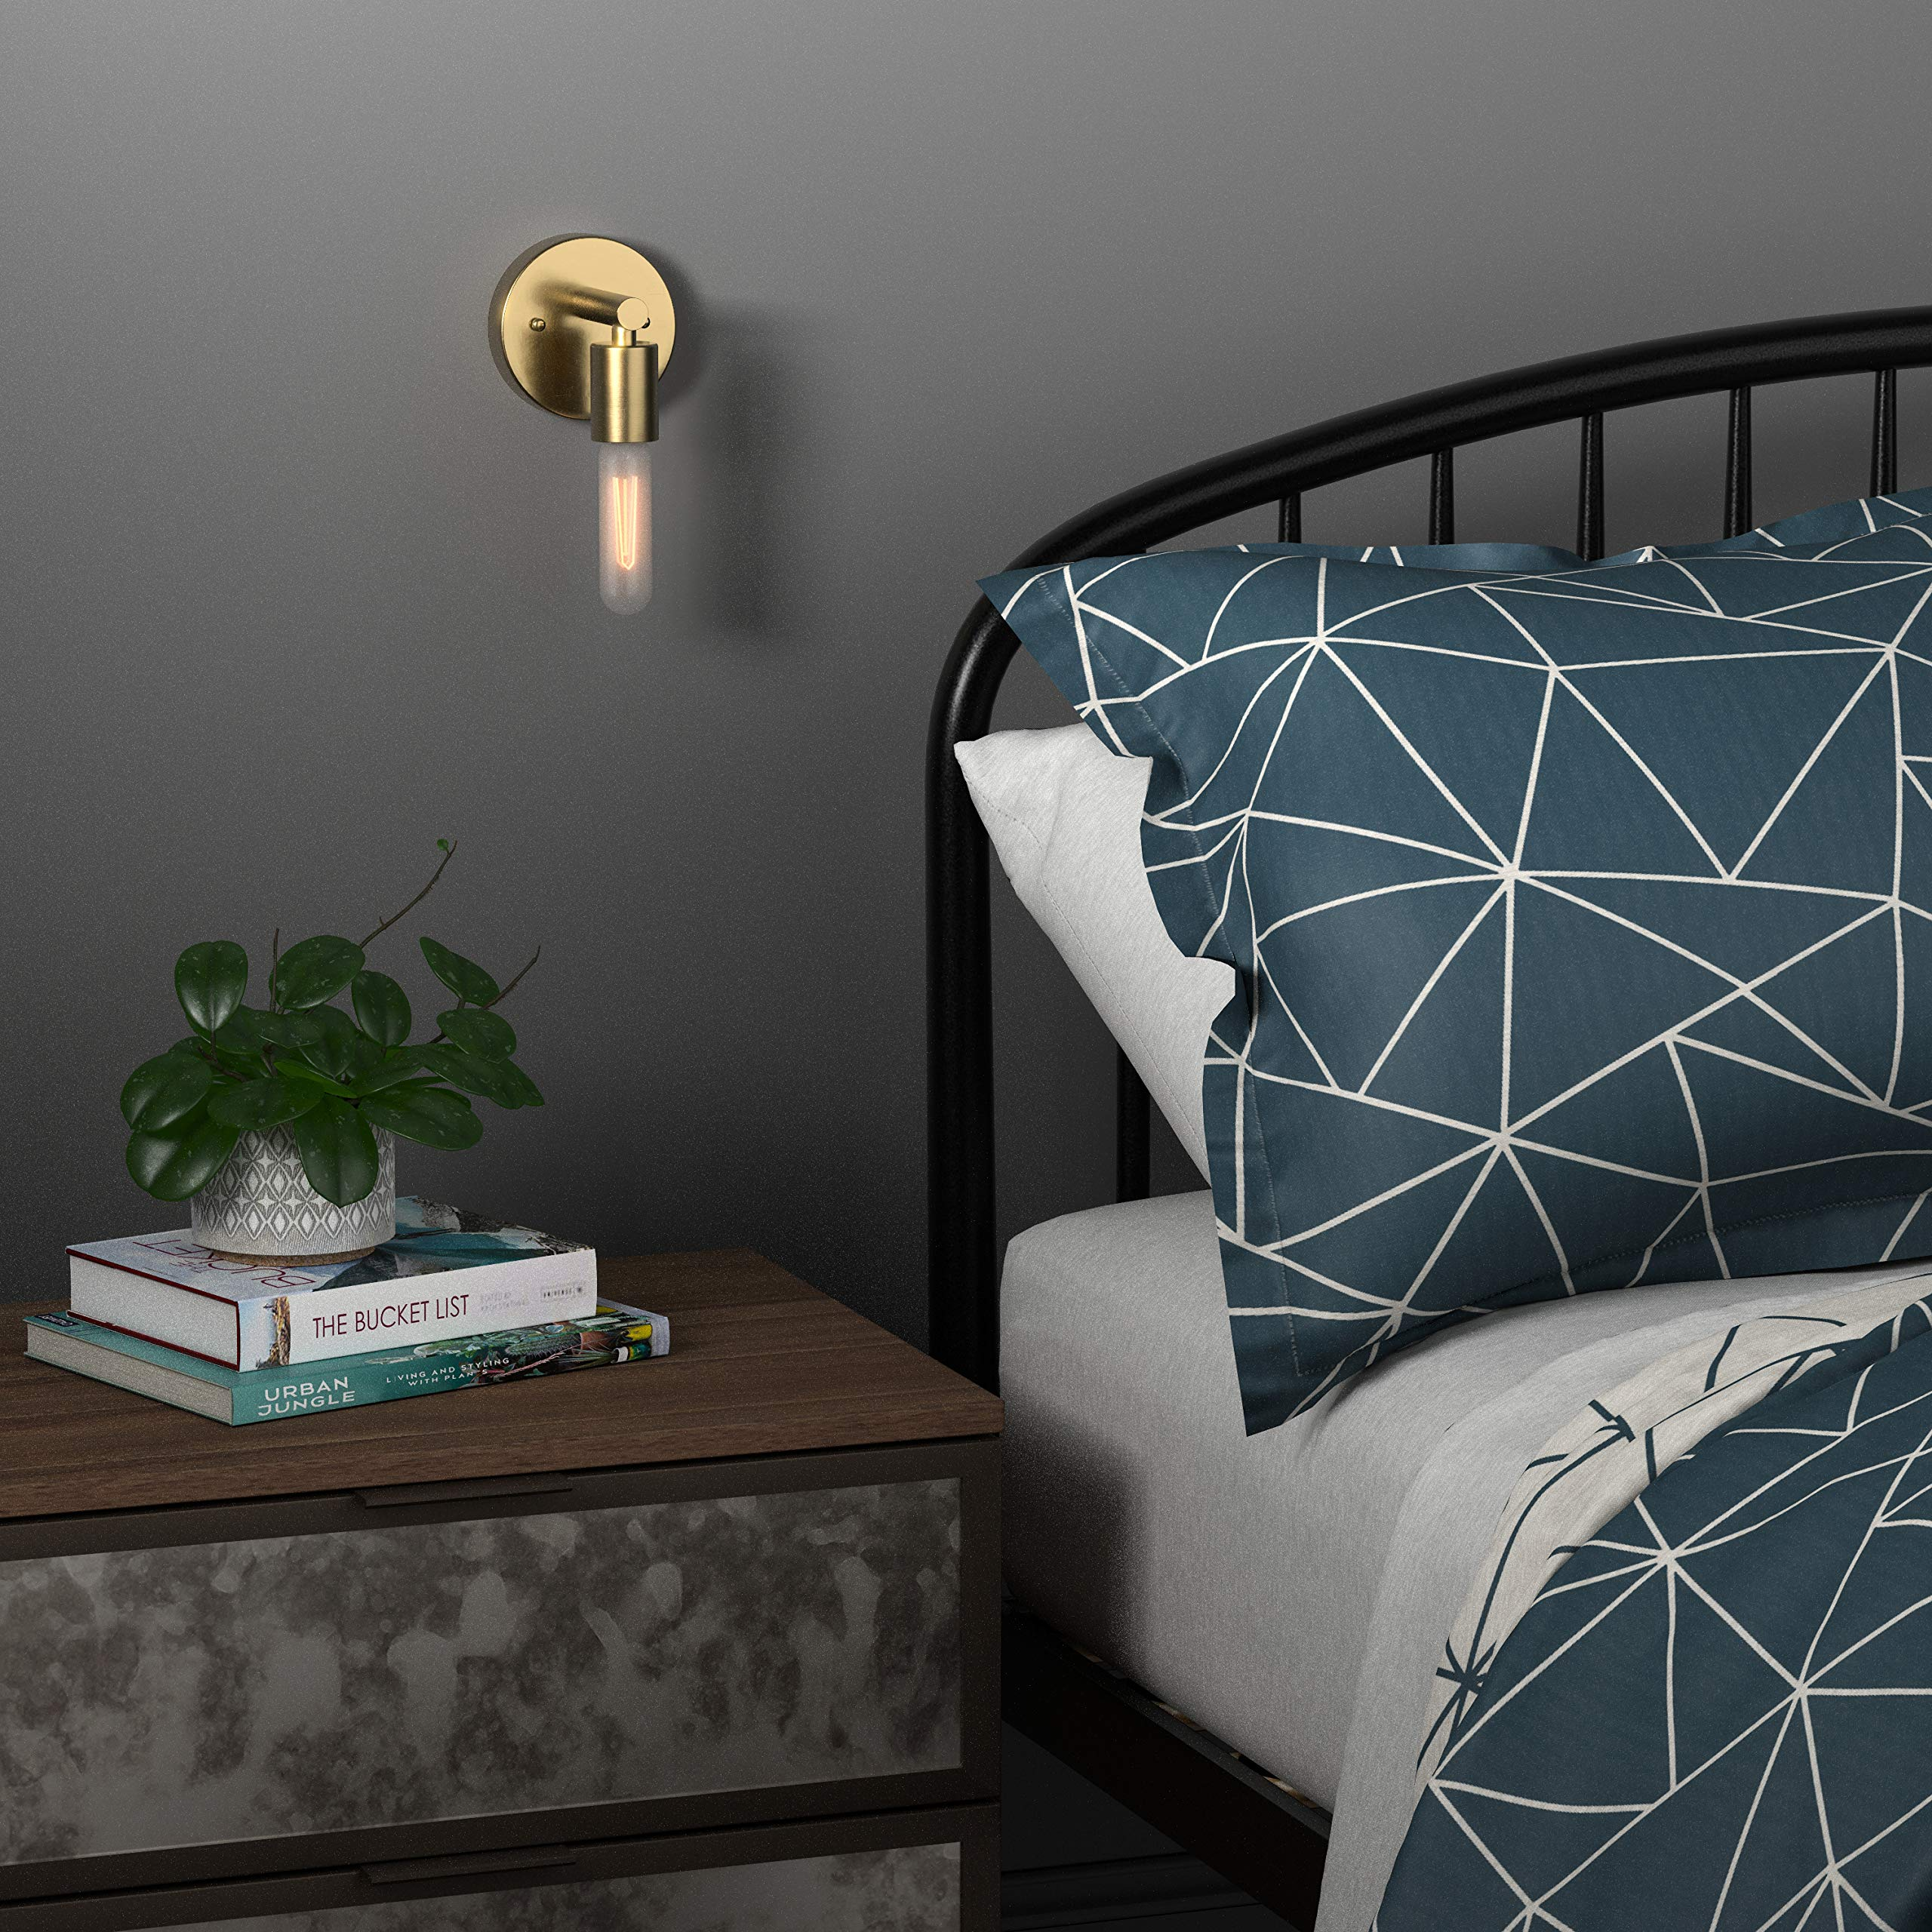 Rivet Modern Wall Sconce with Bulb, 9.13''H, Satin Brass by Rivet (Image #3)